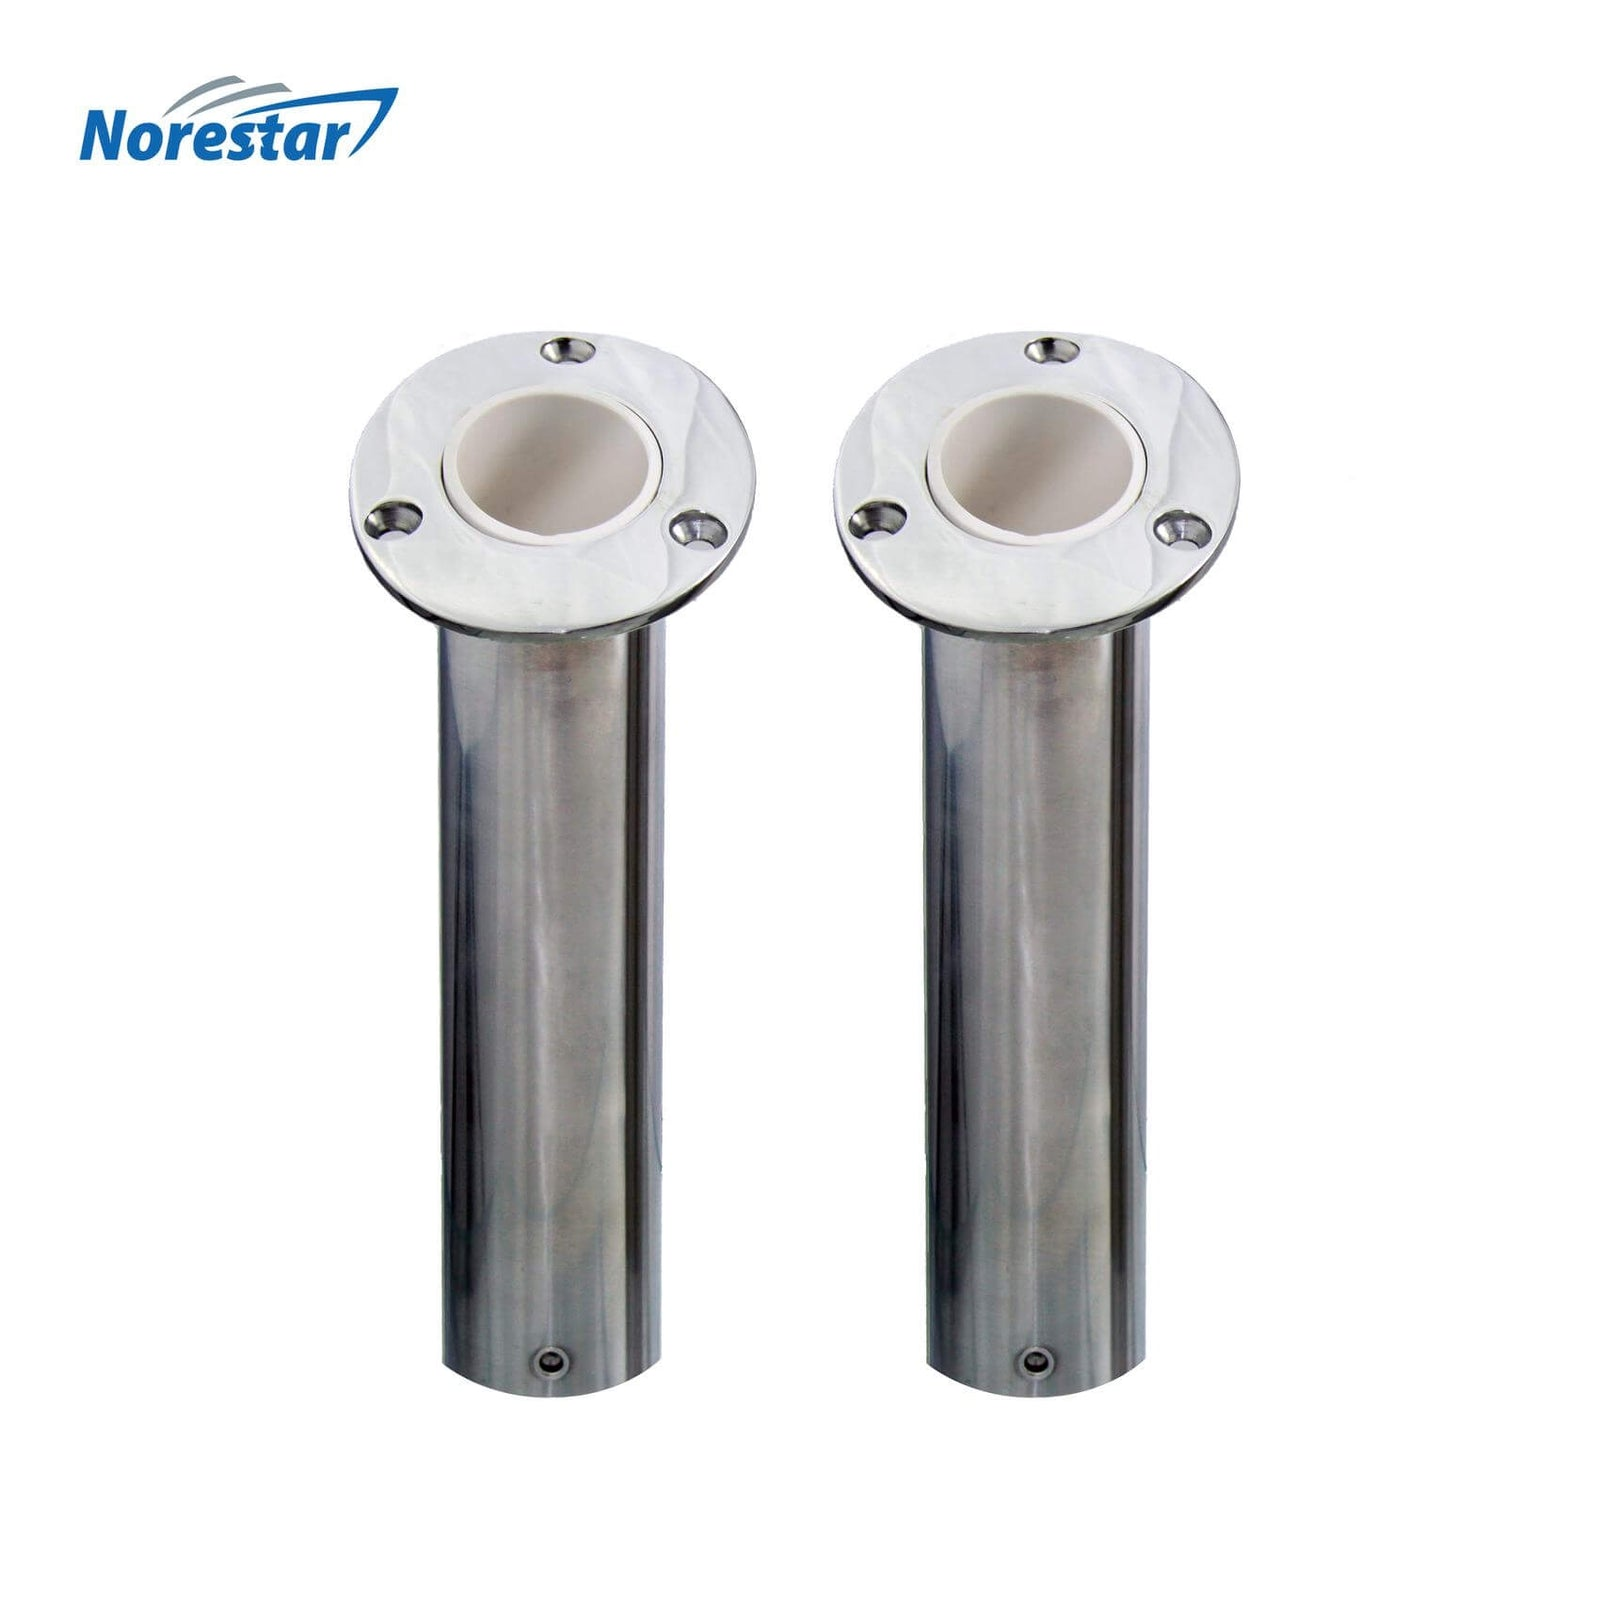 Two Flush Mounted Stainless Steel Rod Holders, Angled 30 Degrees